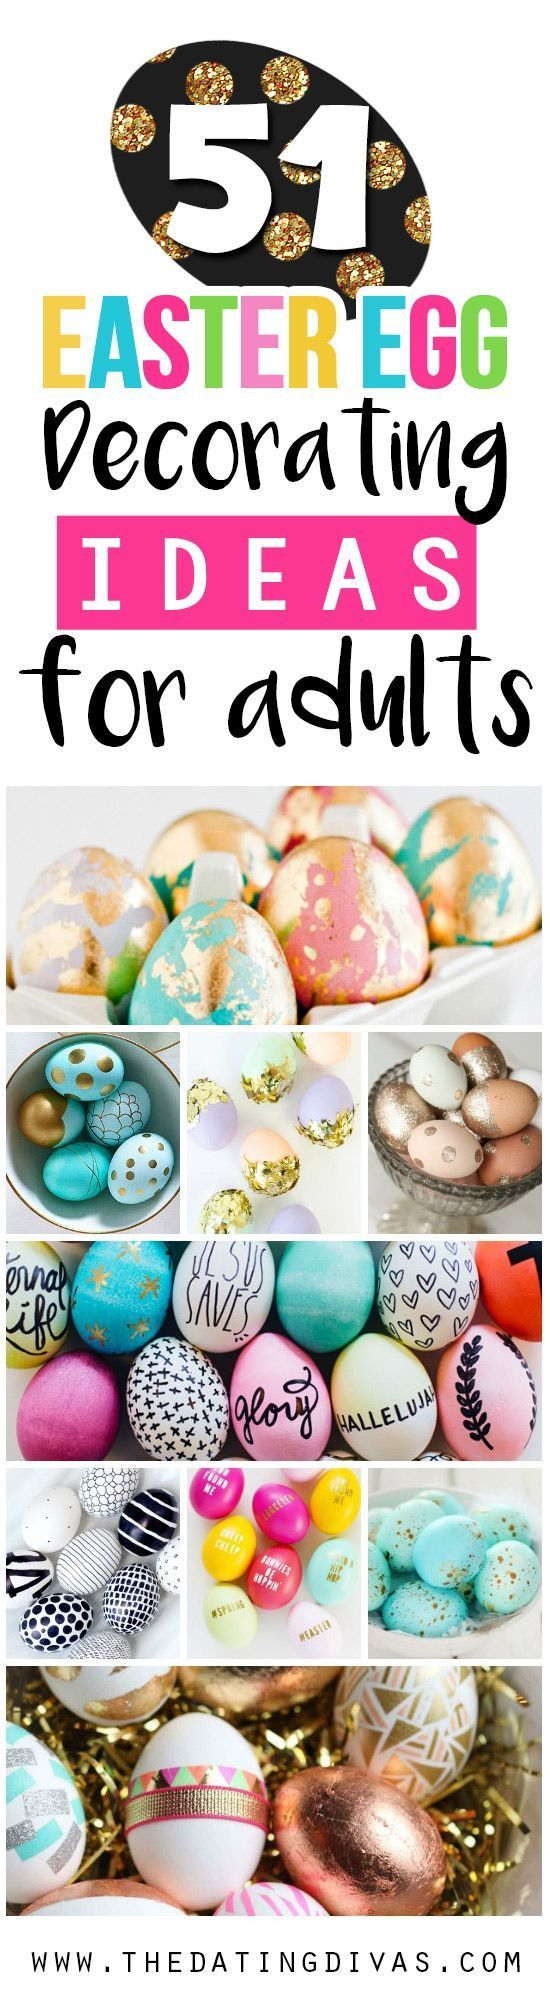 Egg Decorating For Kids And Adults The Dating Divas Creative Easter Eggs Easter Egg Decorating Easter